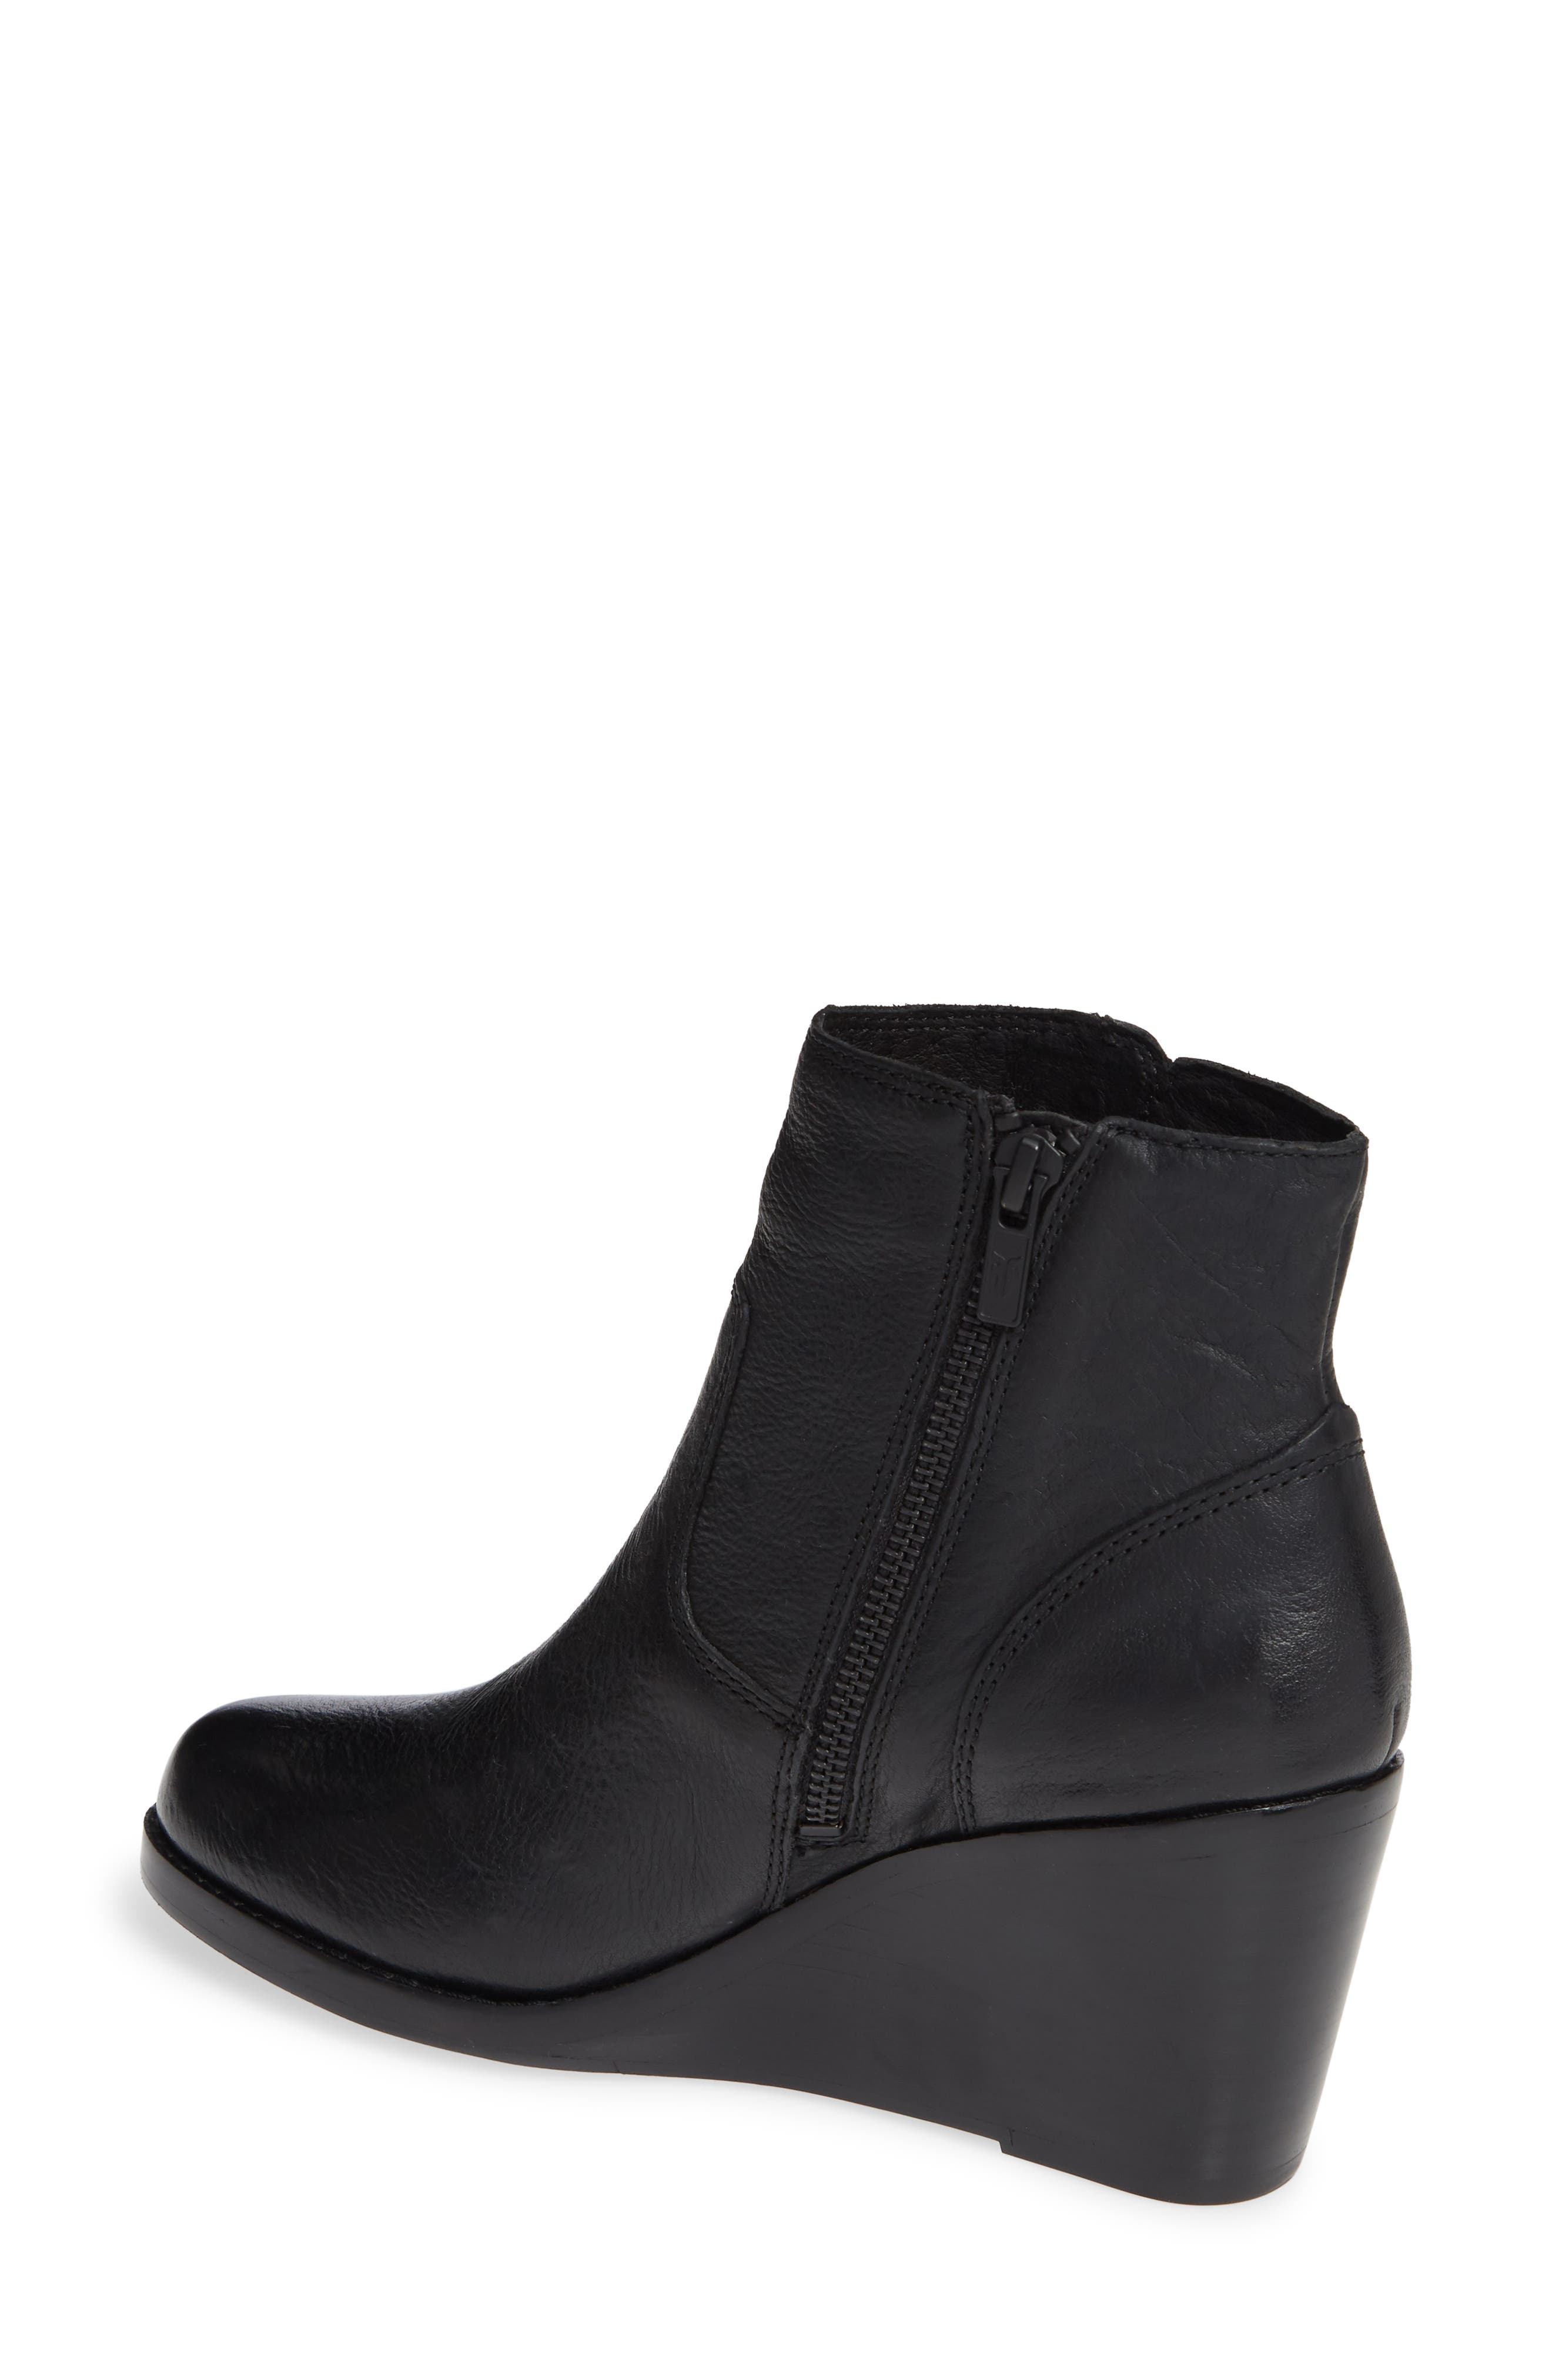 Emma Wedge Bootie,                             Alternate thumbnail 2, color,                             BLACK LEATHER